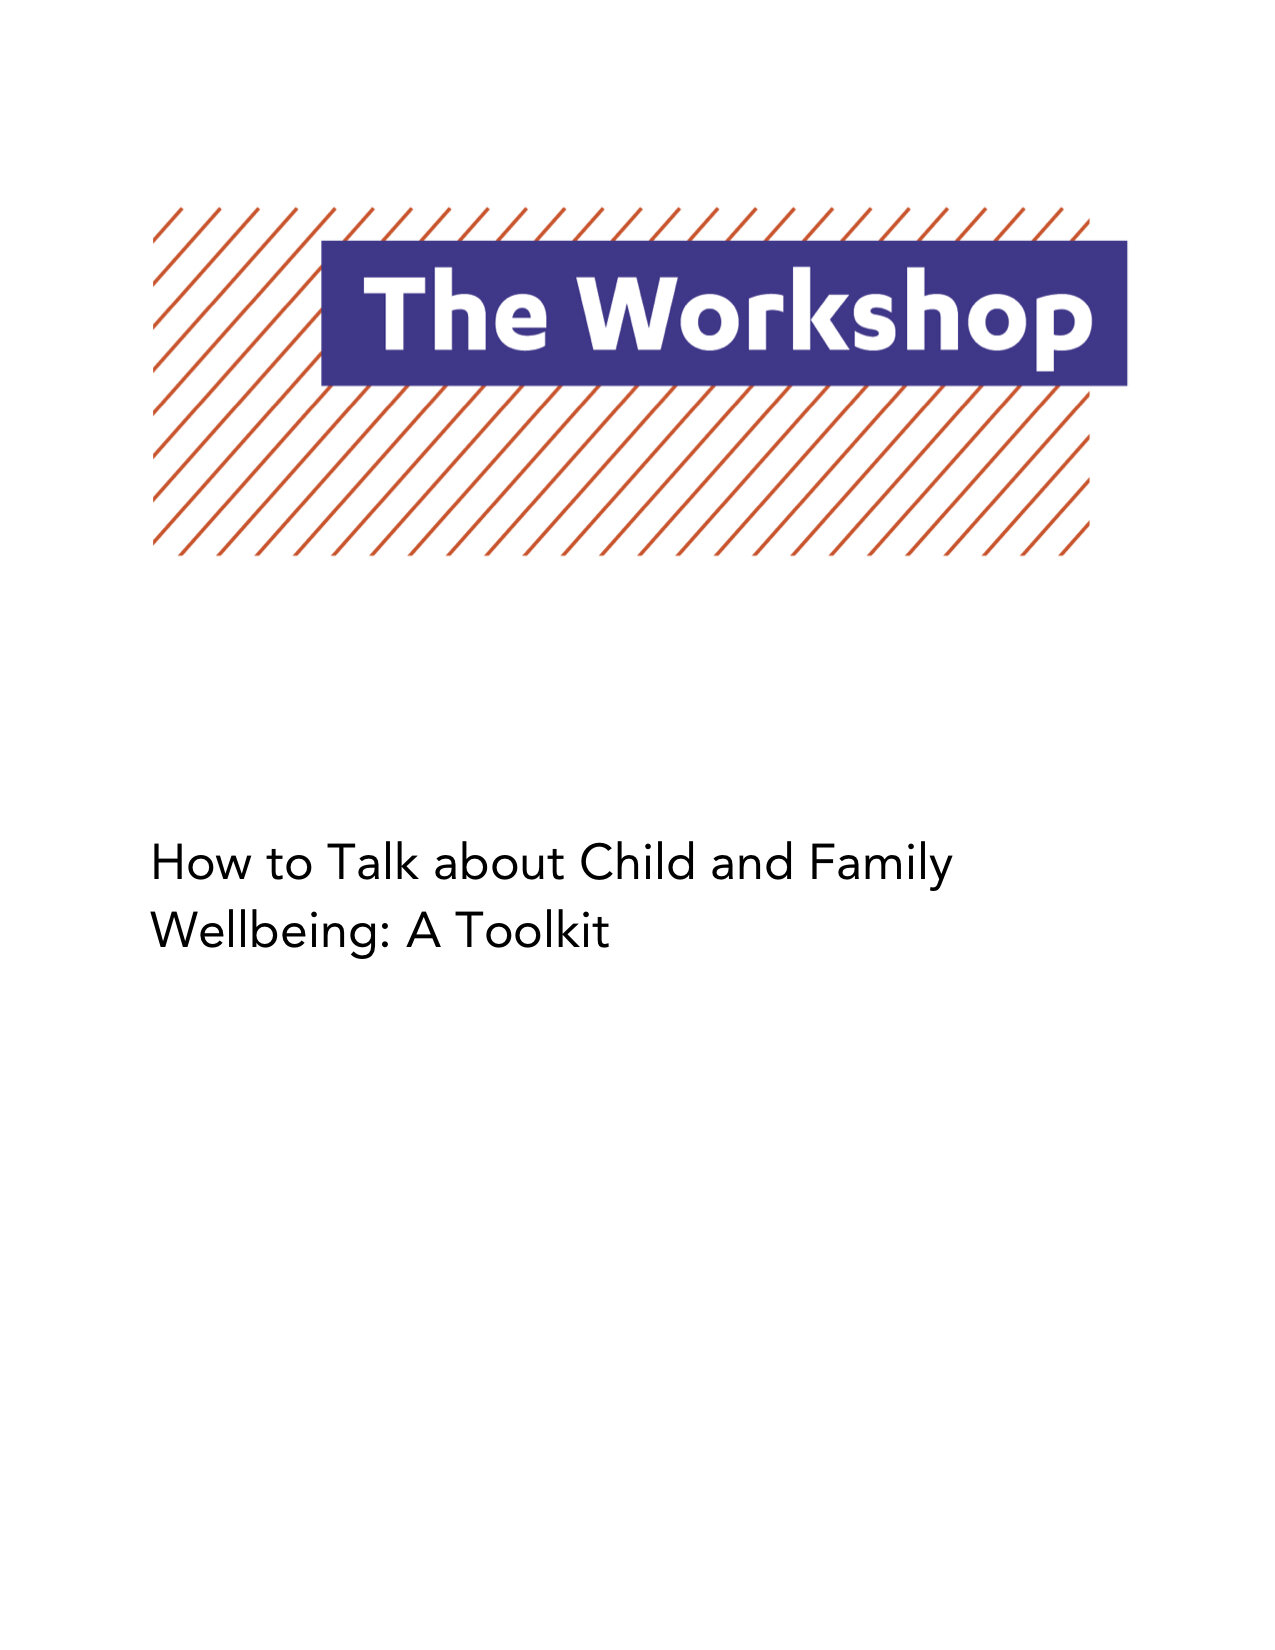 How to talk about Child and Family Wellbeing cover.jpg